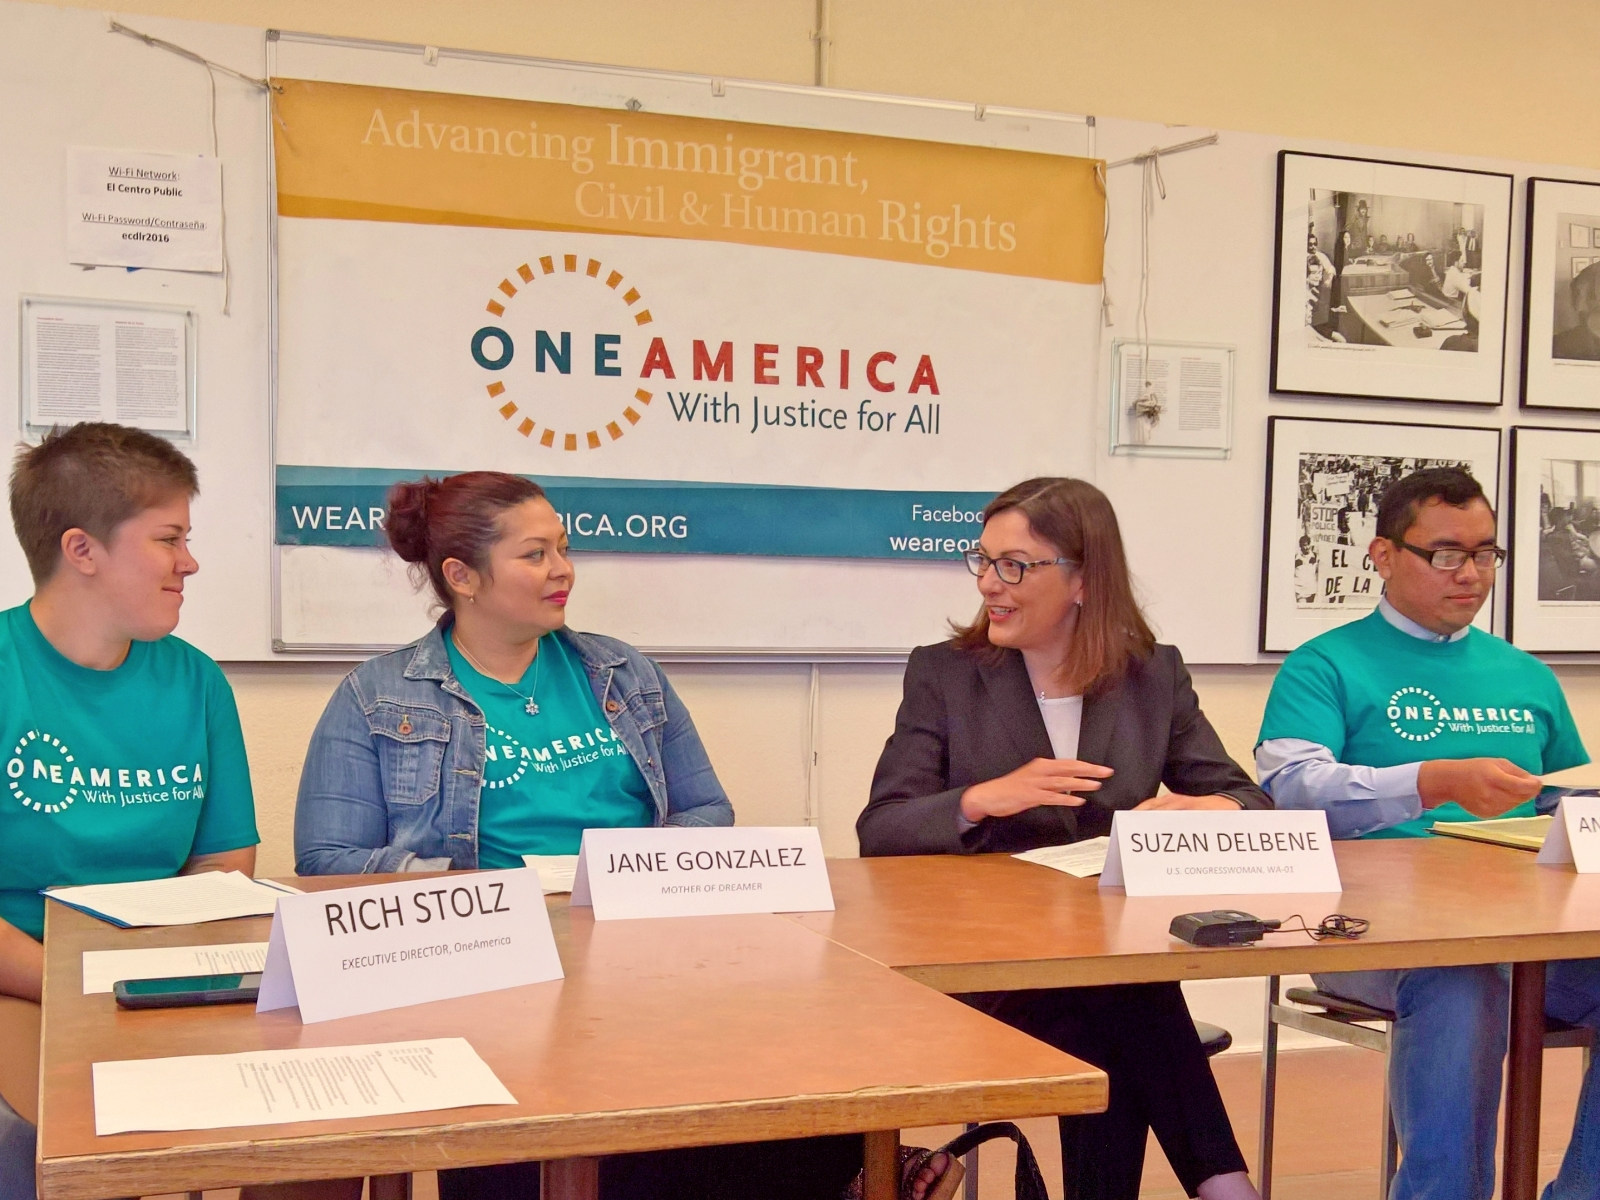 Congresswoman DelBene on a panel with the organization One America